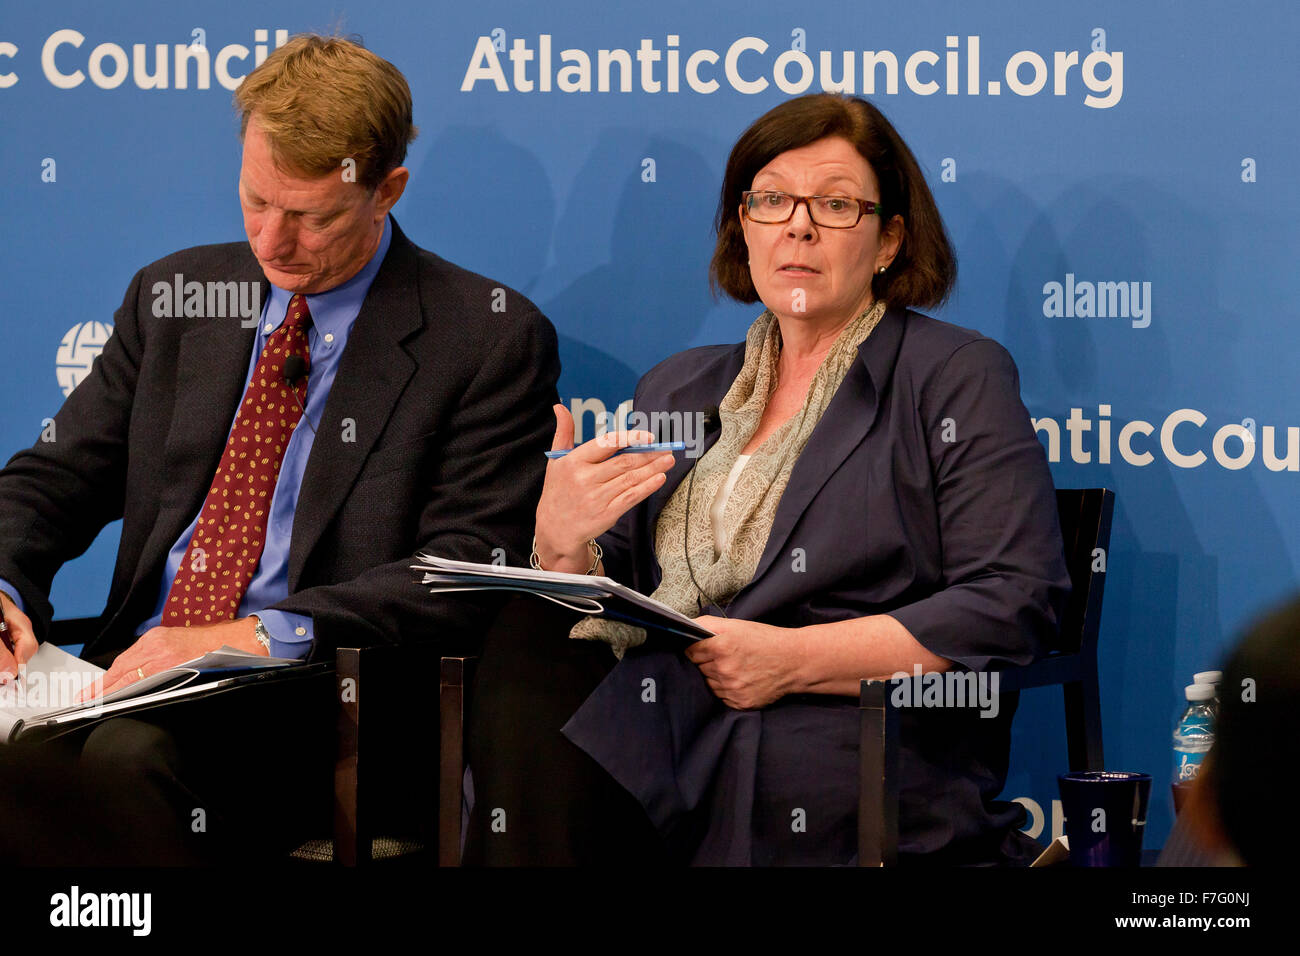 Sheila Smith, Senior Fellow for Japan Studies, Council on Foreign Relations, speaking at Atlantic Council - Washington, - Stock Image